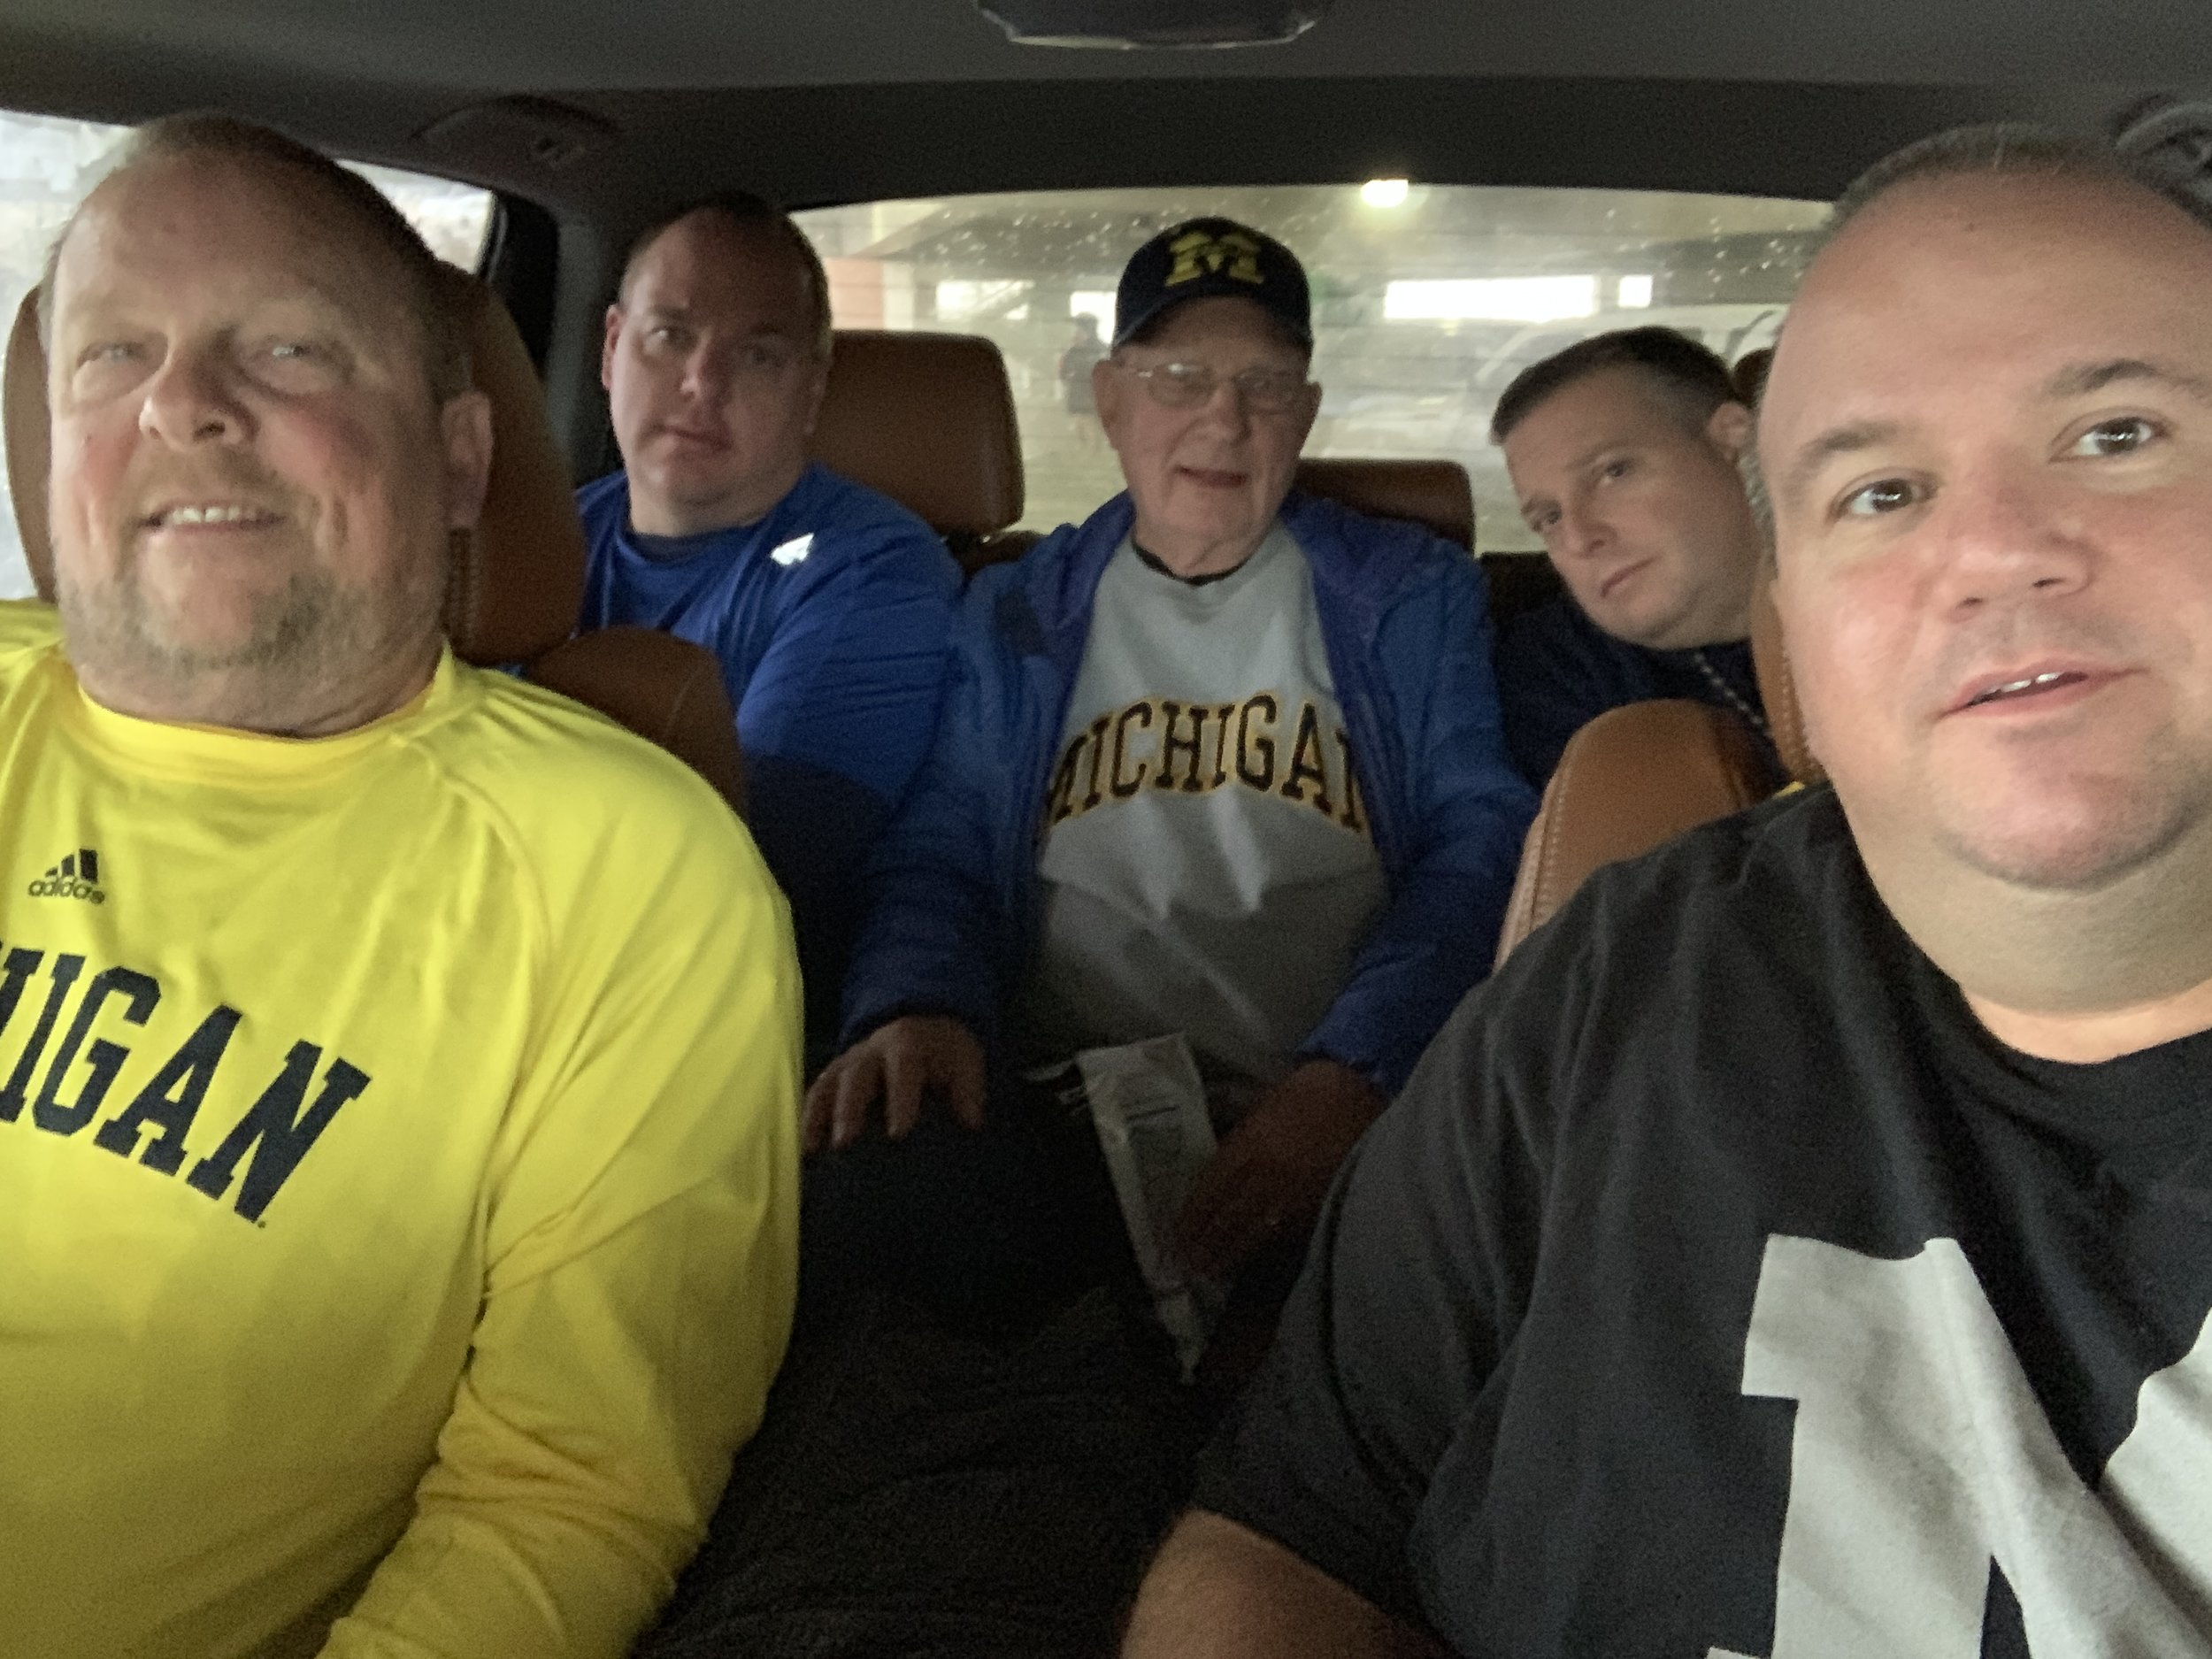 The tailgate: five dudes in a car just not wanting to get noticed...neither in the car nor when they peed all over the parking garage